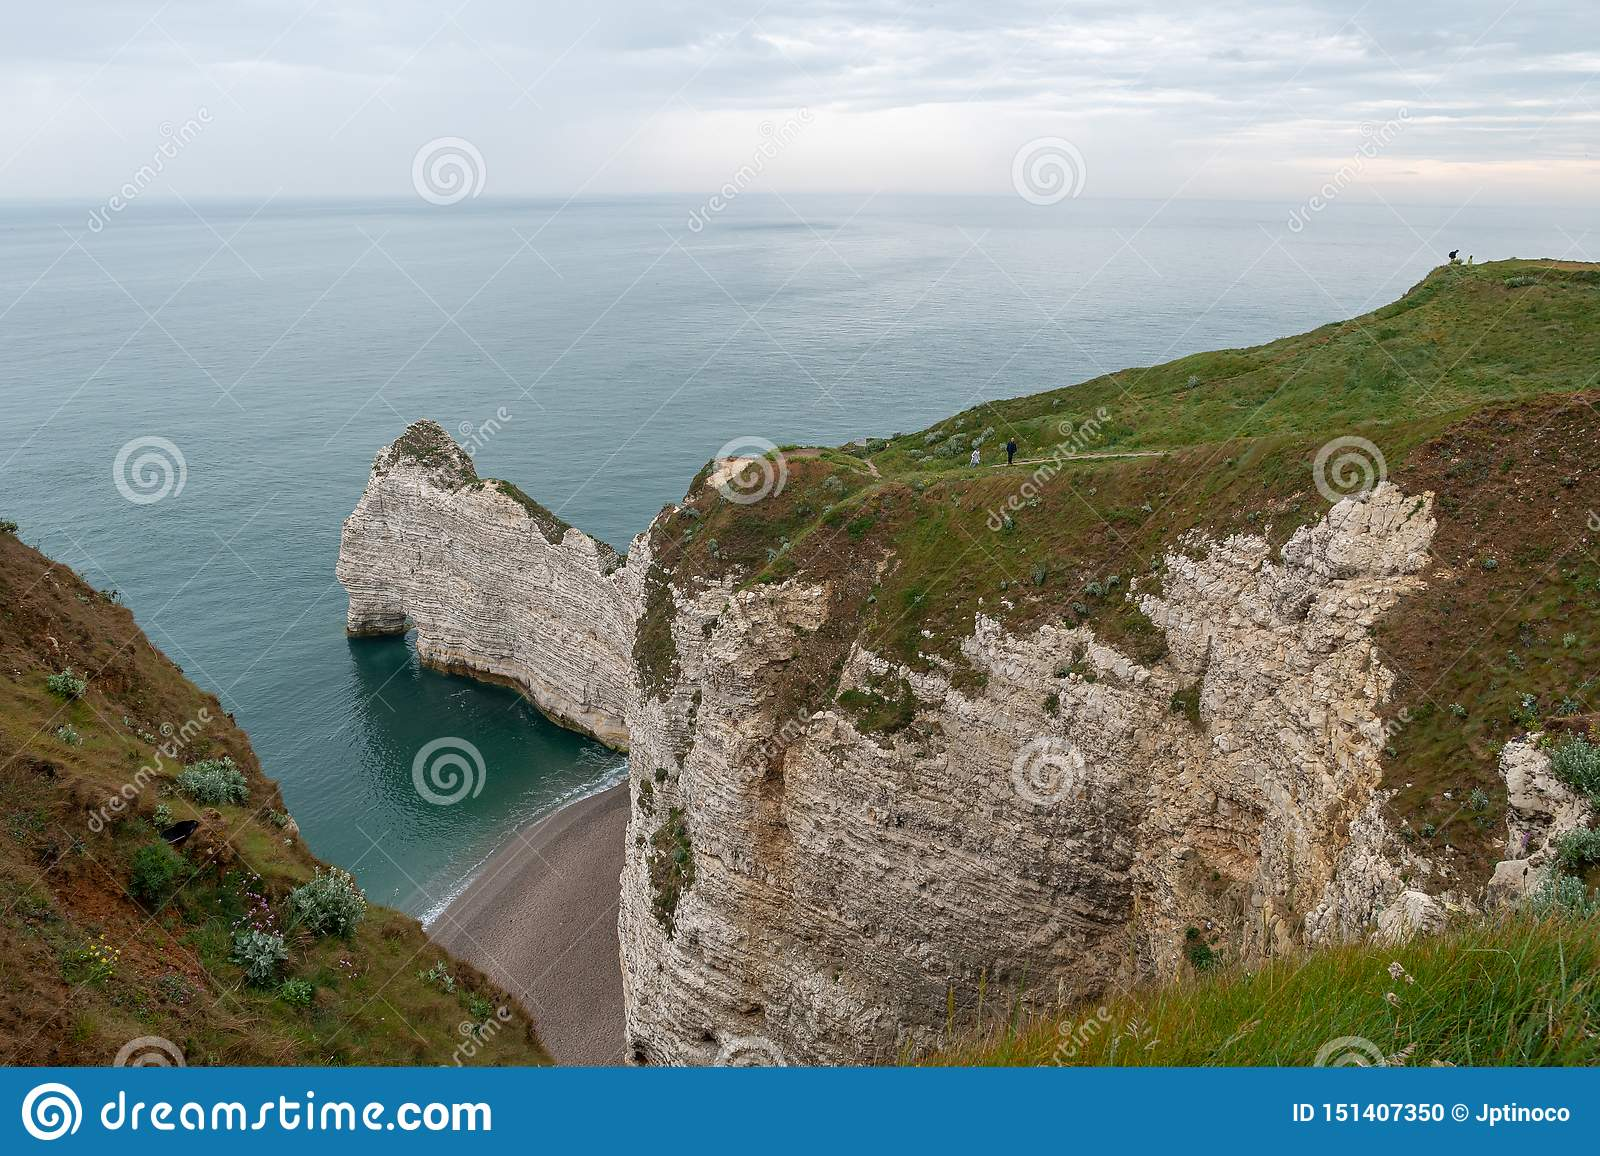 The Cliffs Of Etretat Normandy France Stock Photo Image Of